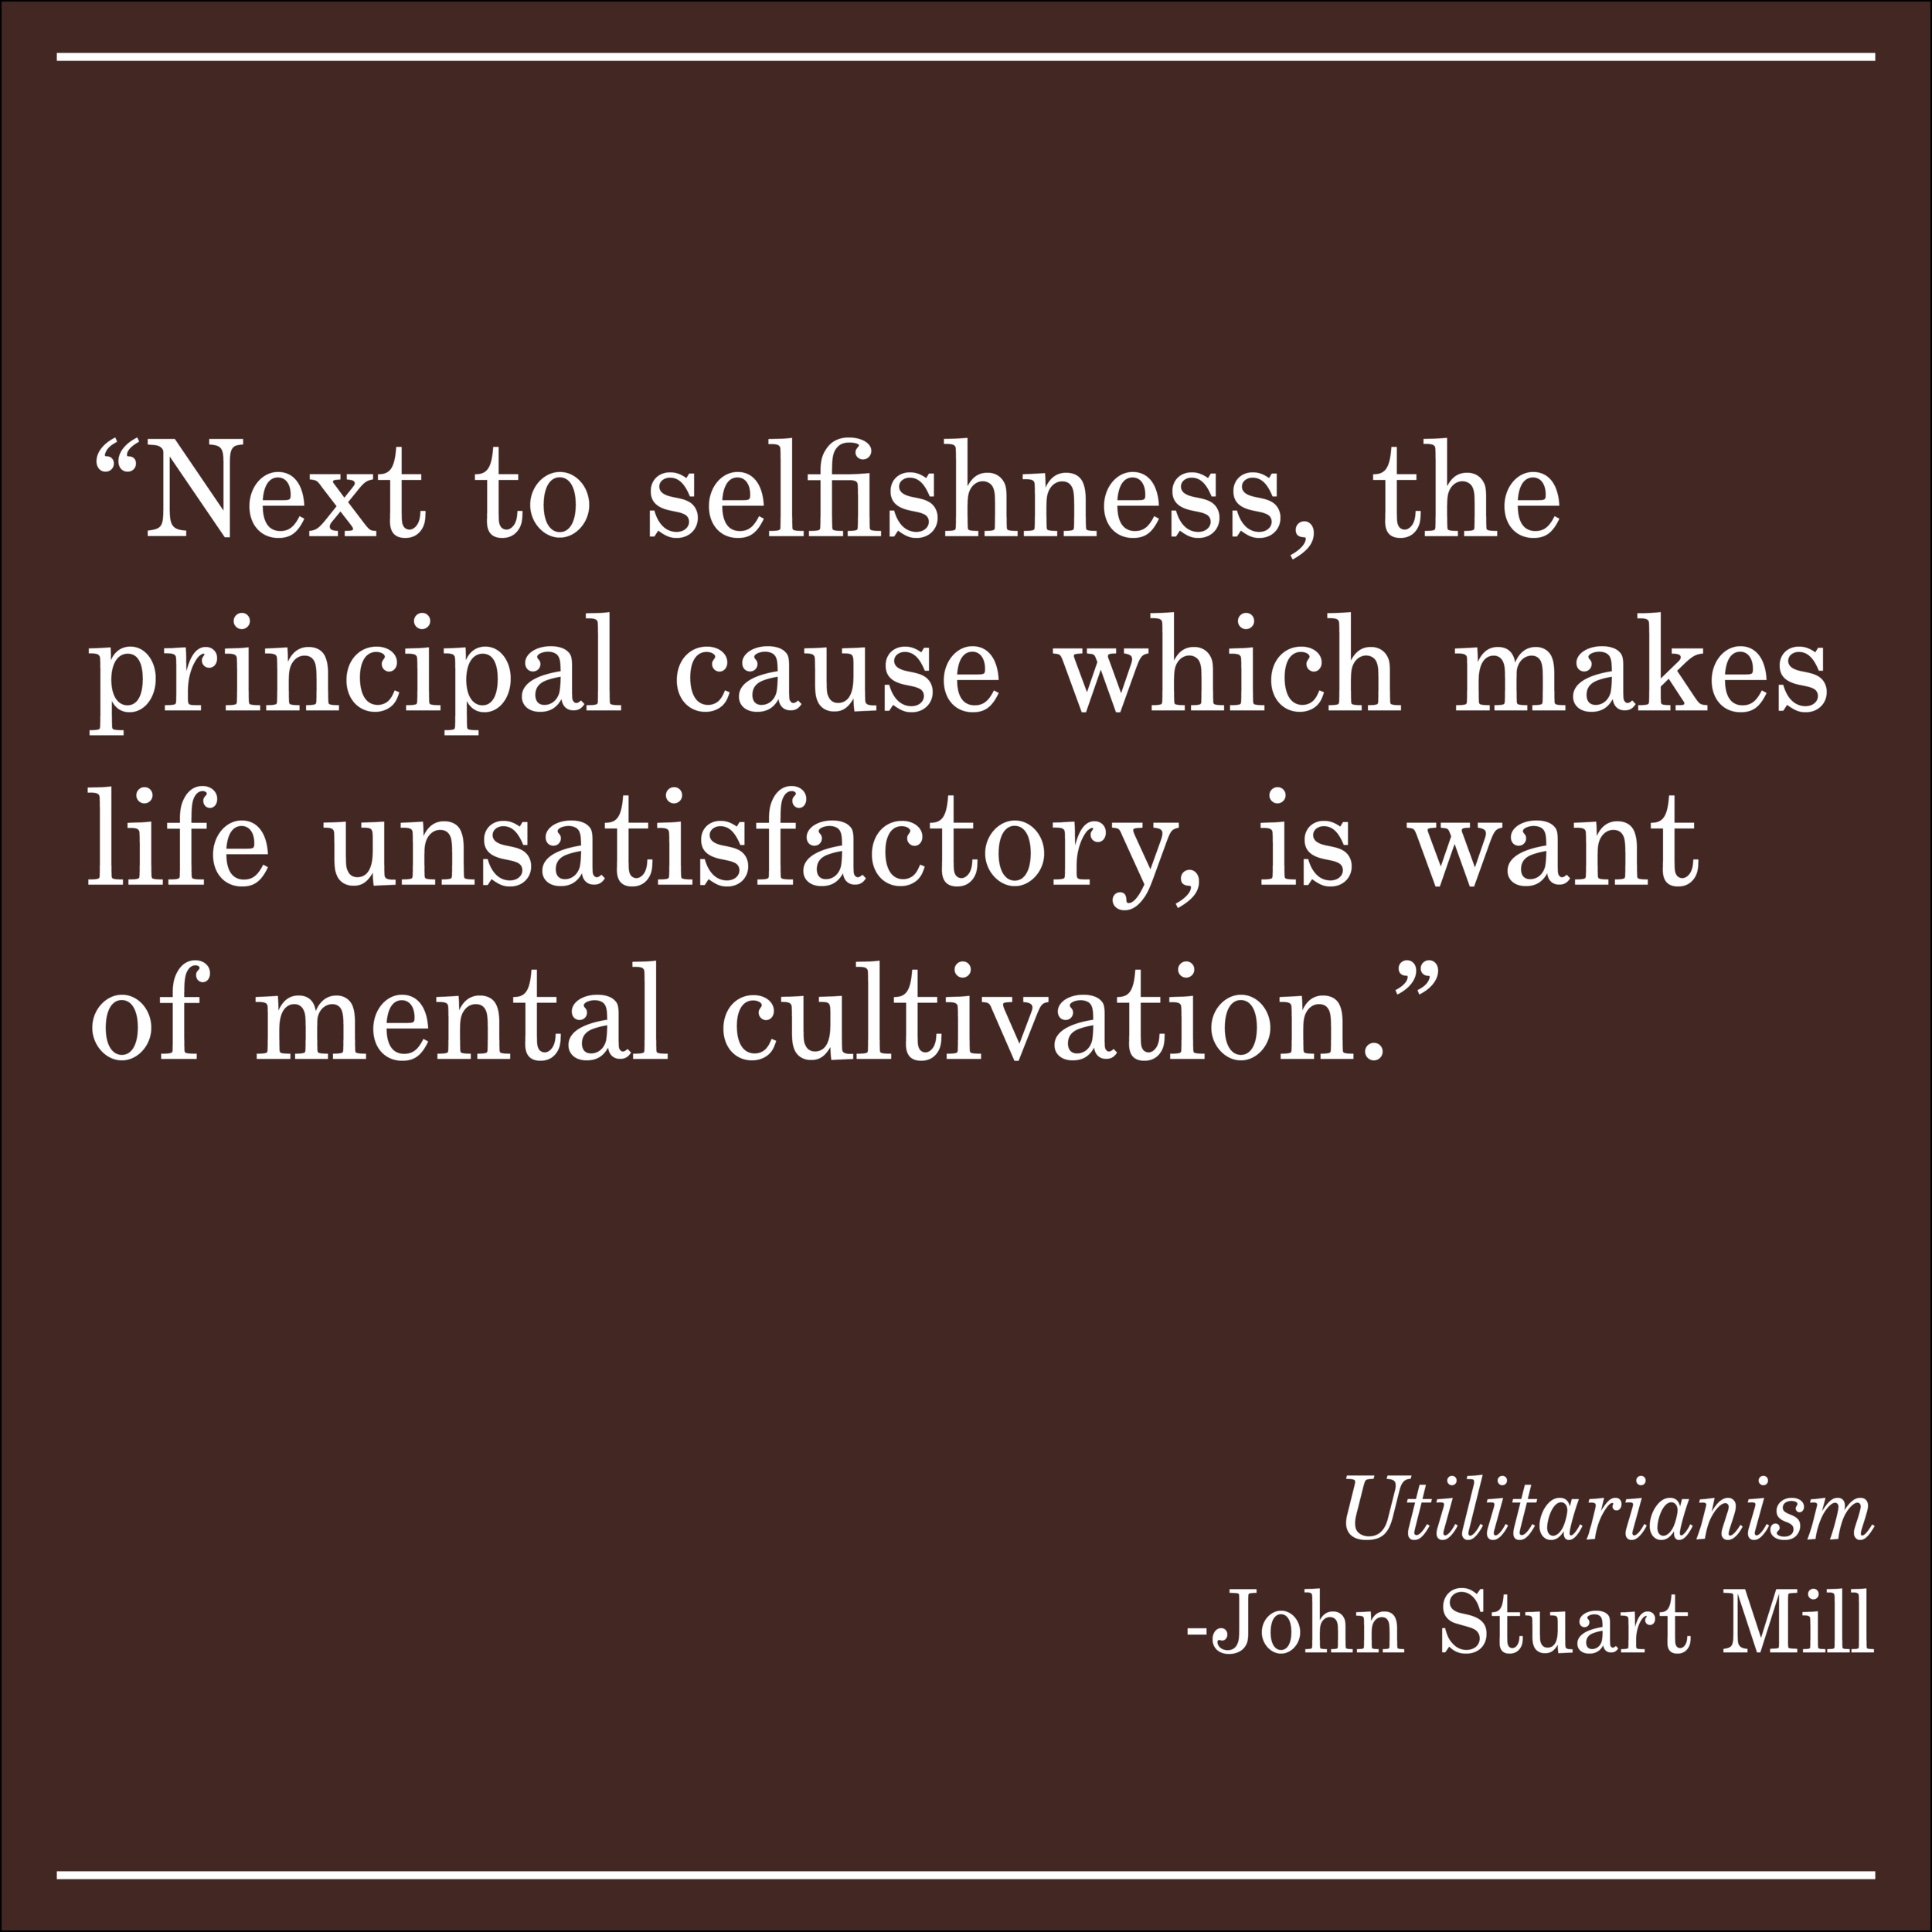 Daily Quote Utilitarianism by John Stuart Mill